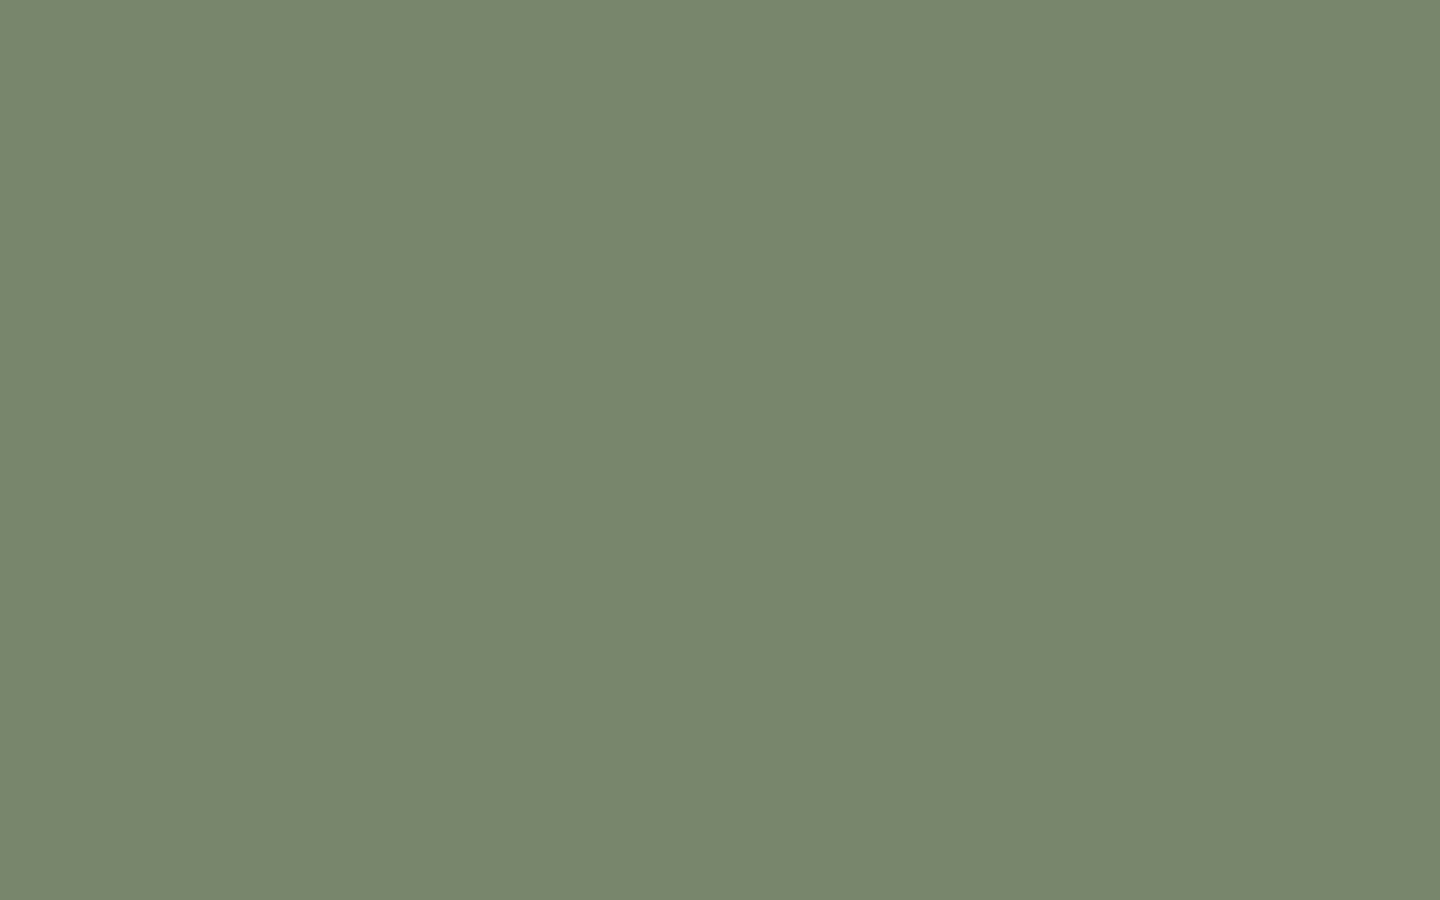 1440x900 Camouflage Green Solid Color Background